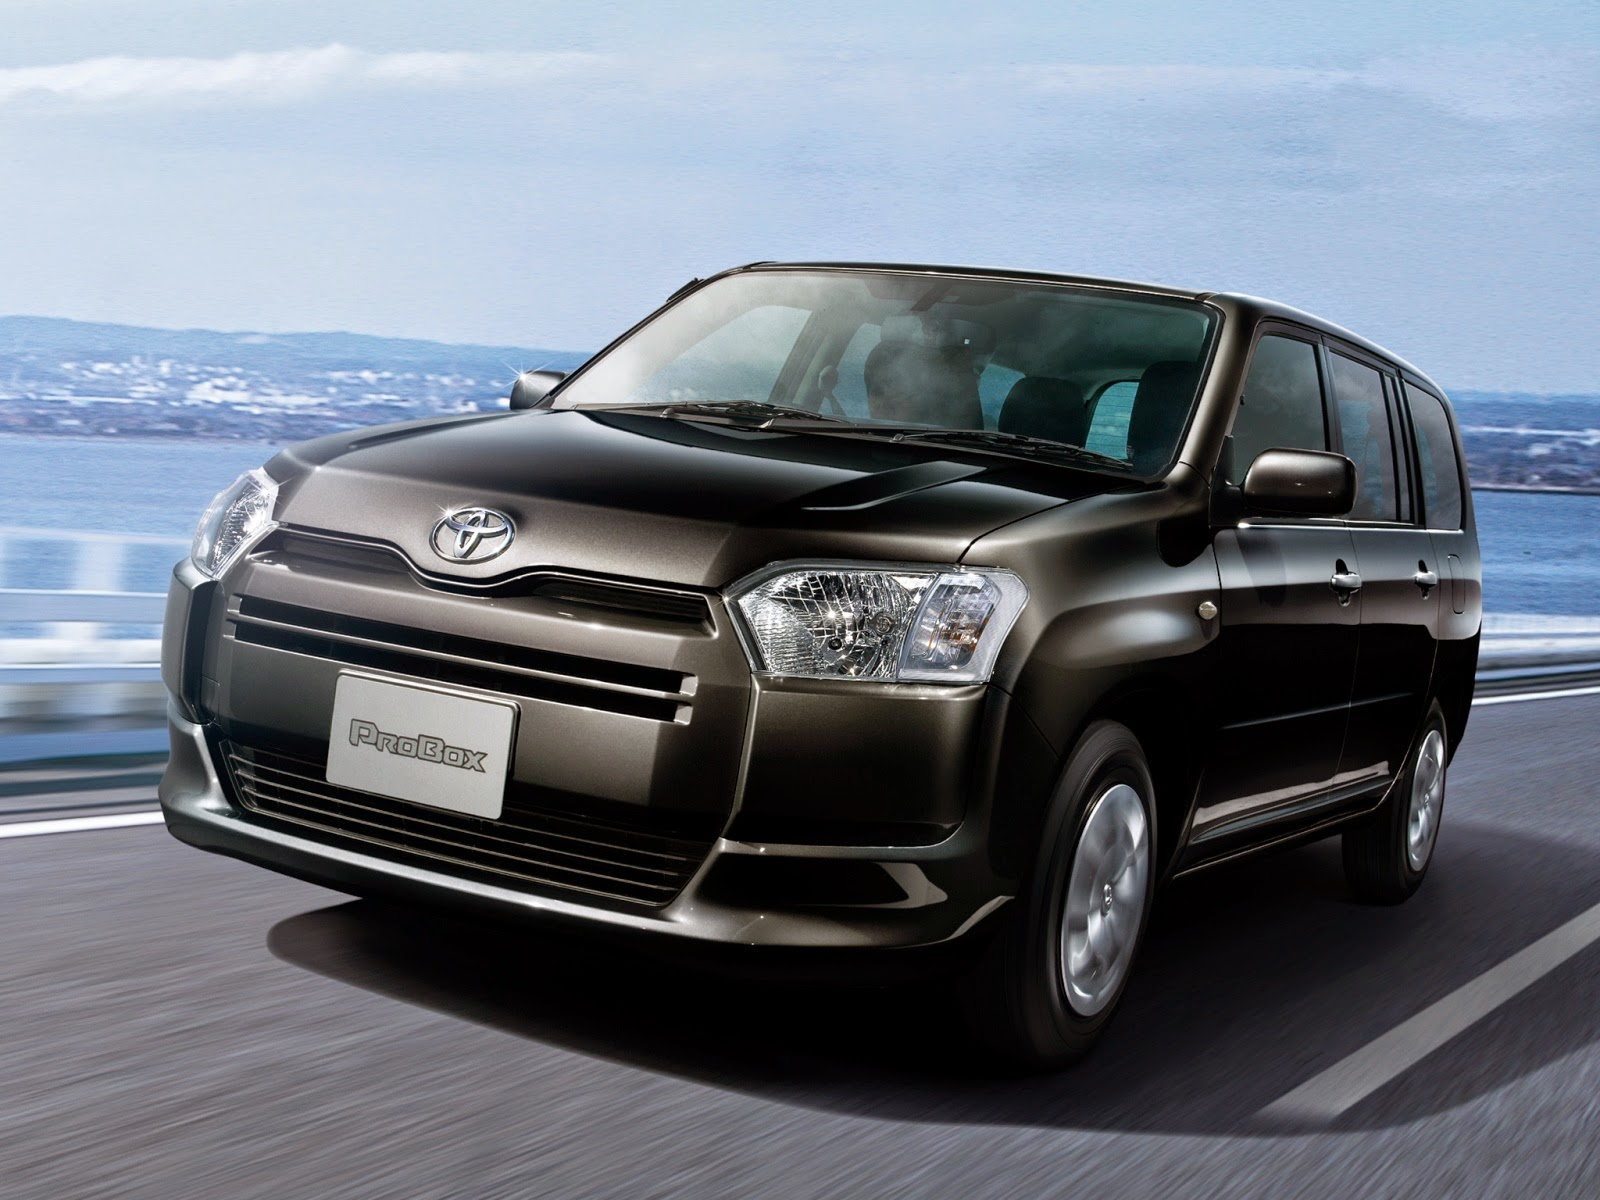 2014 toyota probox and succeed \u2013 updated practicality auto reviewToyota Probox New Shape #2